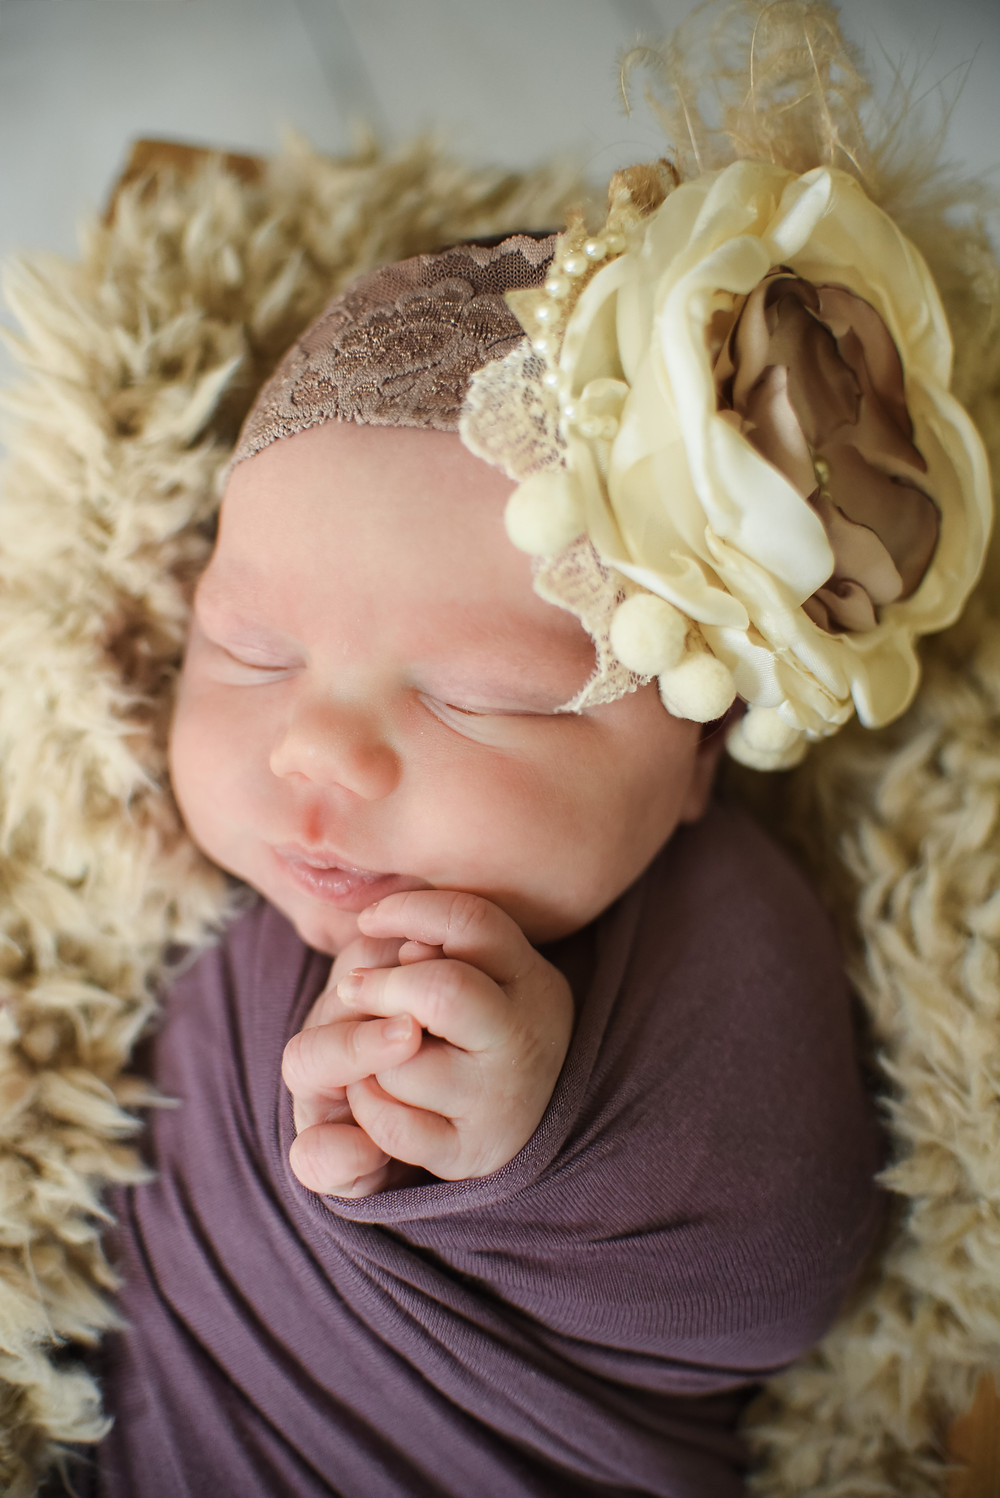 shannon ritter newborn photographer dover delaware in home studio session